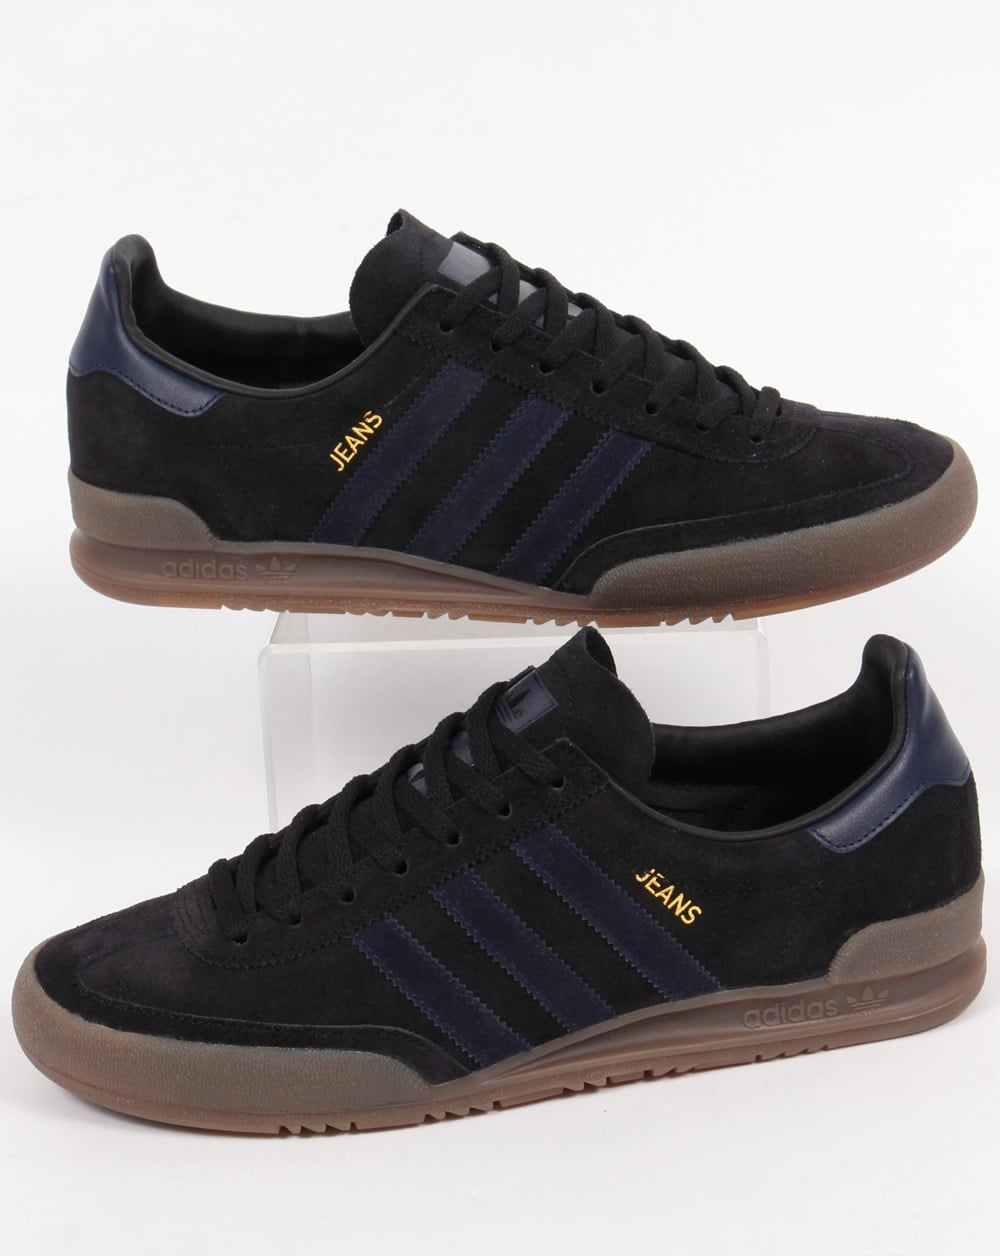 Adidas Originals Trainers Black | www.imgkid.com - The Image Kid Has It!